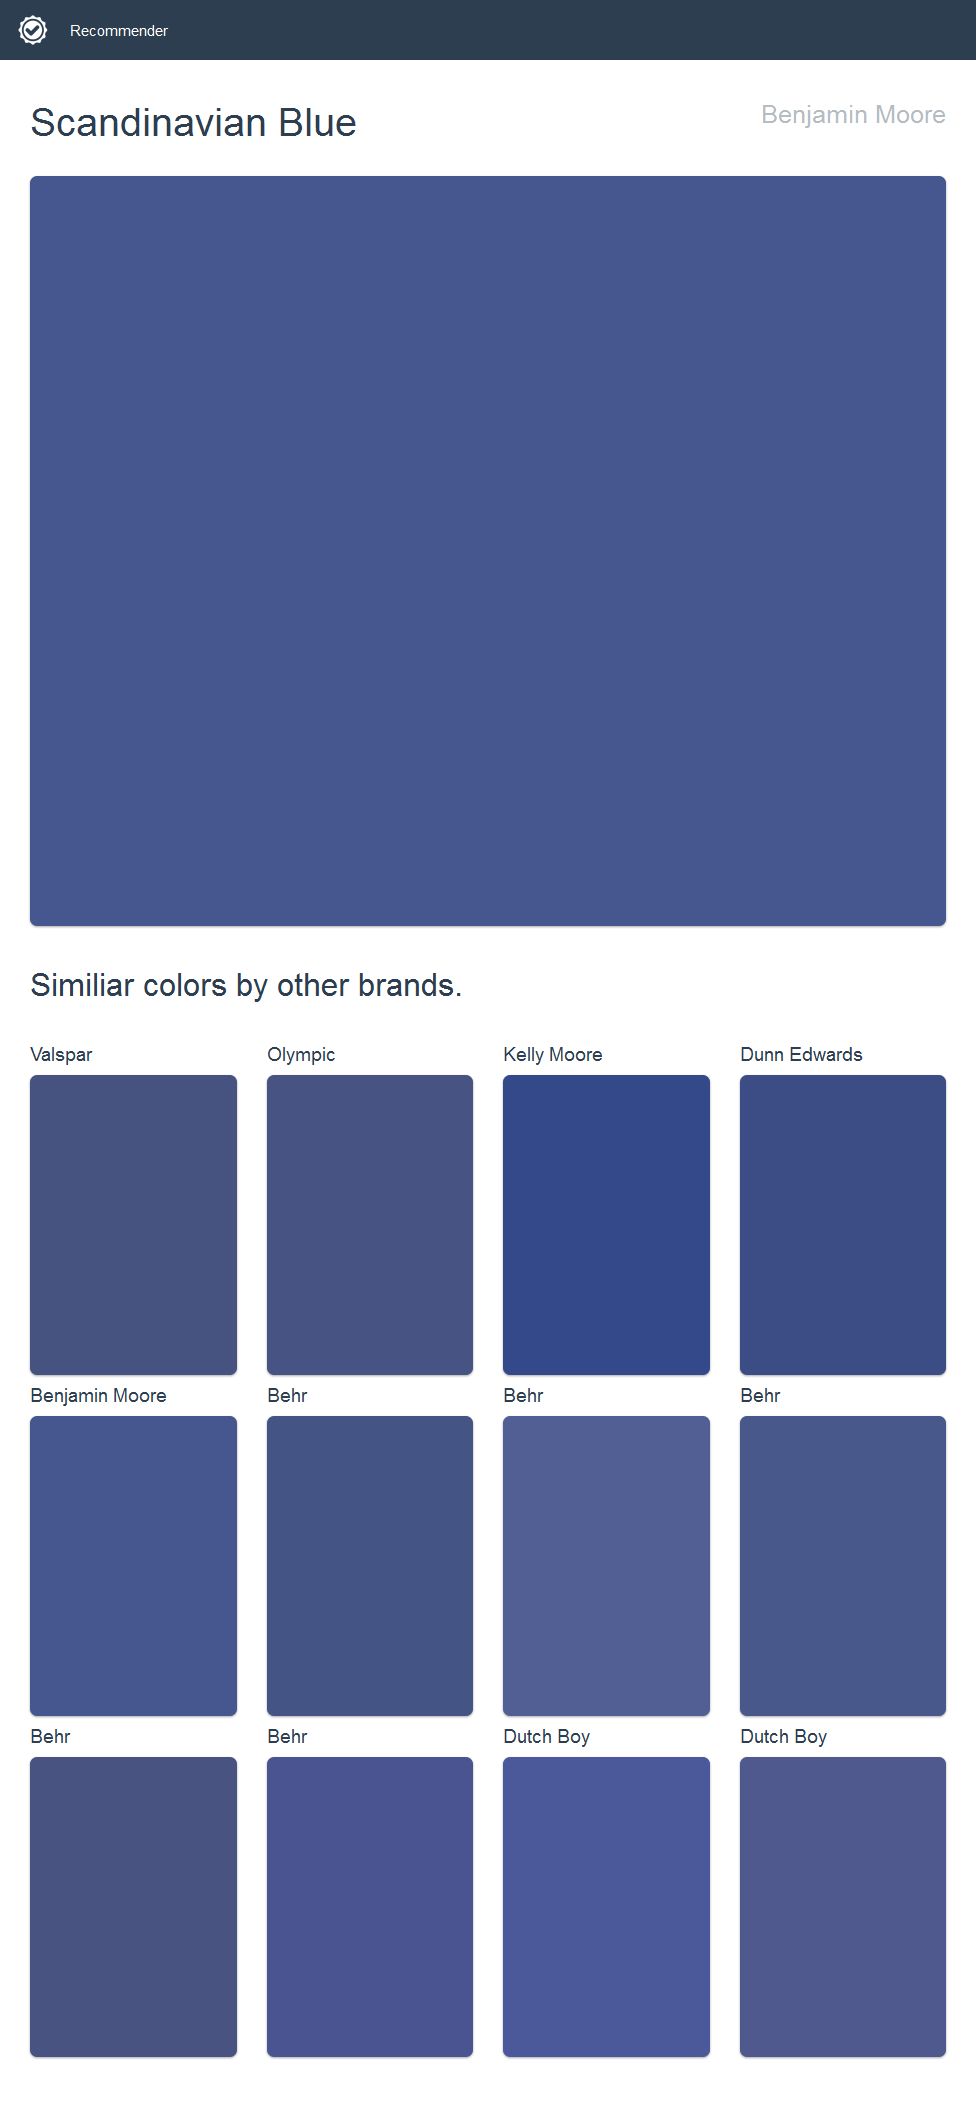 Scandinavian Blue Benjamin Moore Click The Image To See Similiar Colors By Other Brands